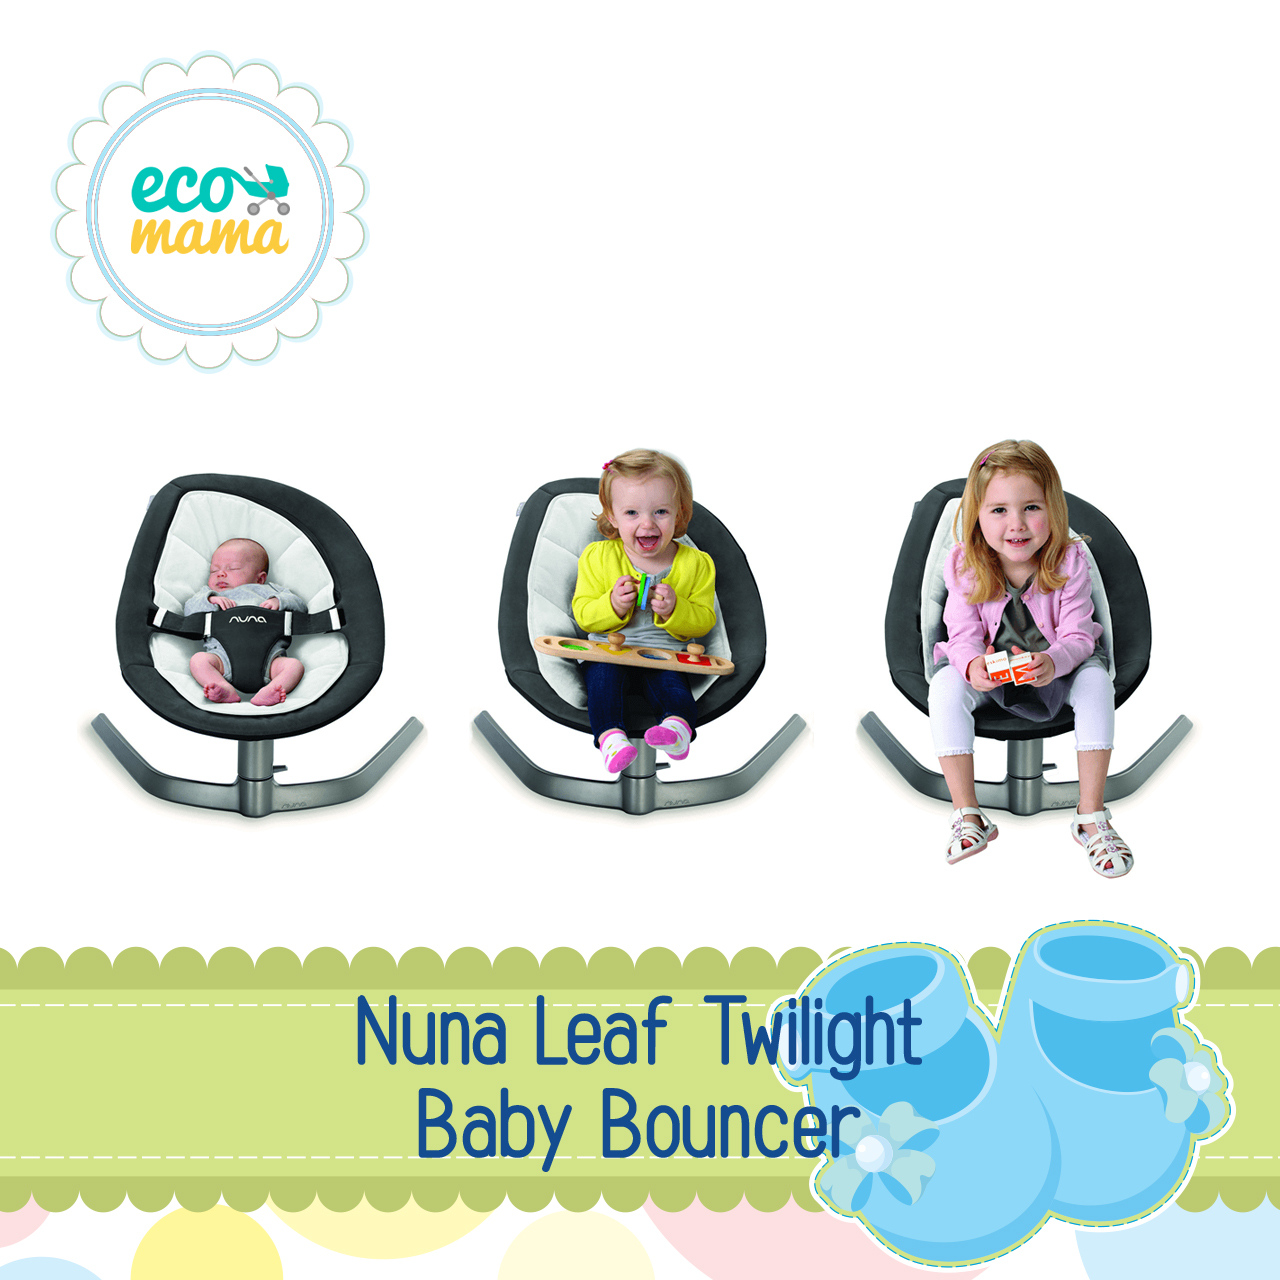 Nuna Leaf Twillight